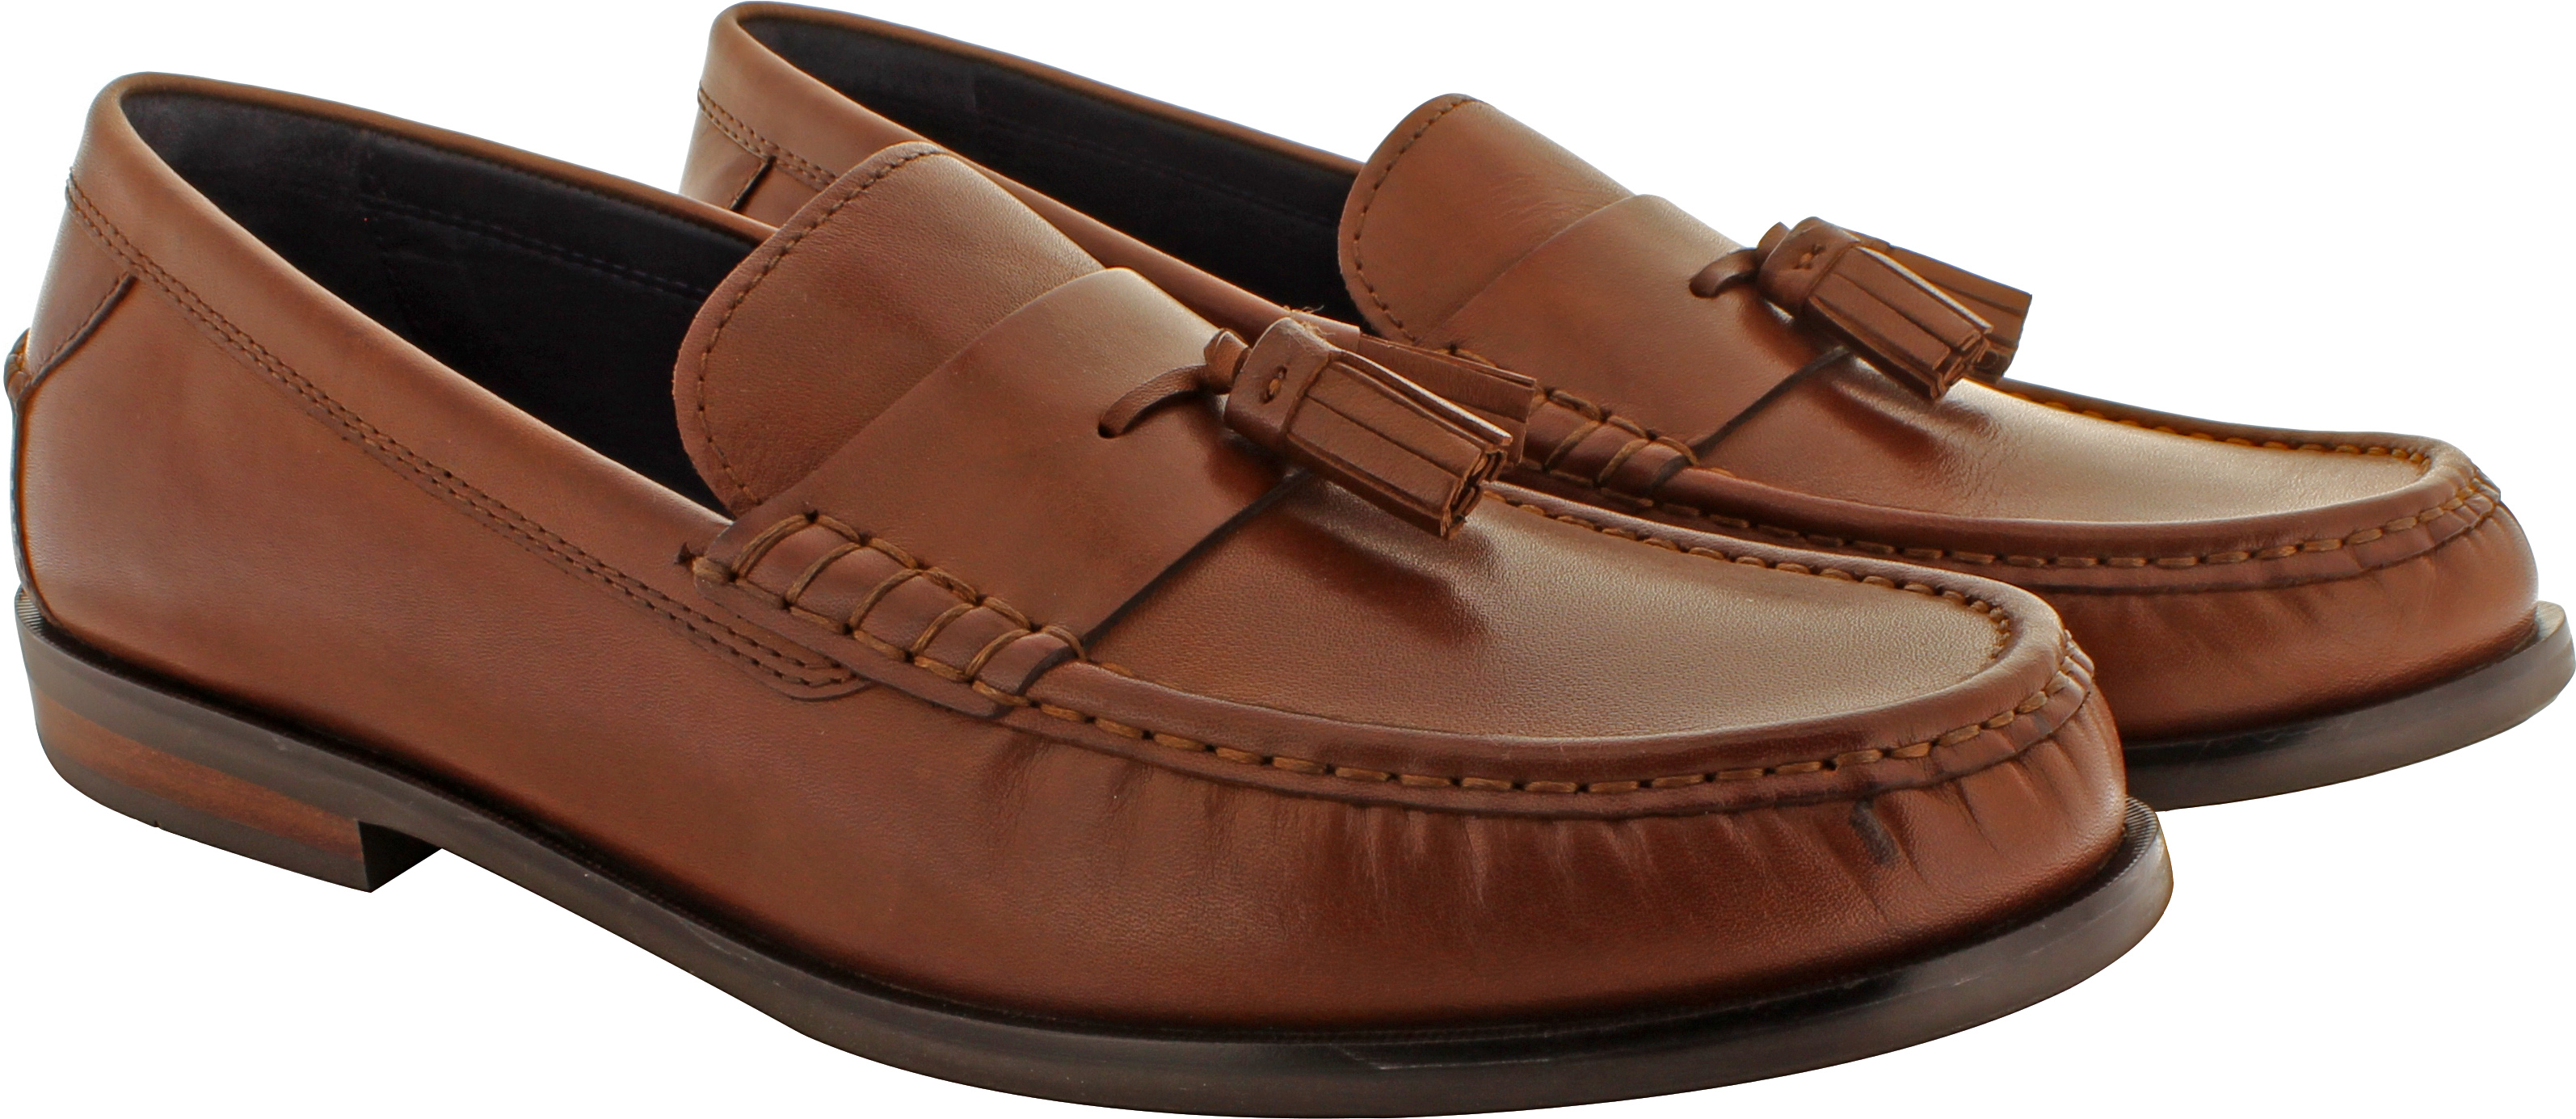 1c366a6e753 ... Cole Haan Men s C25264 - Pinch Friday Tassel Contemporary ·  https   www.theshoemart.com product images images COL